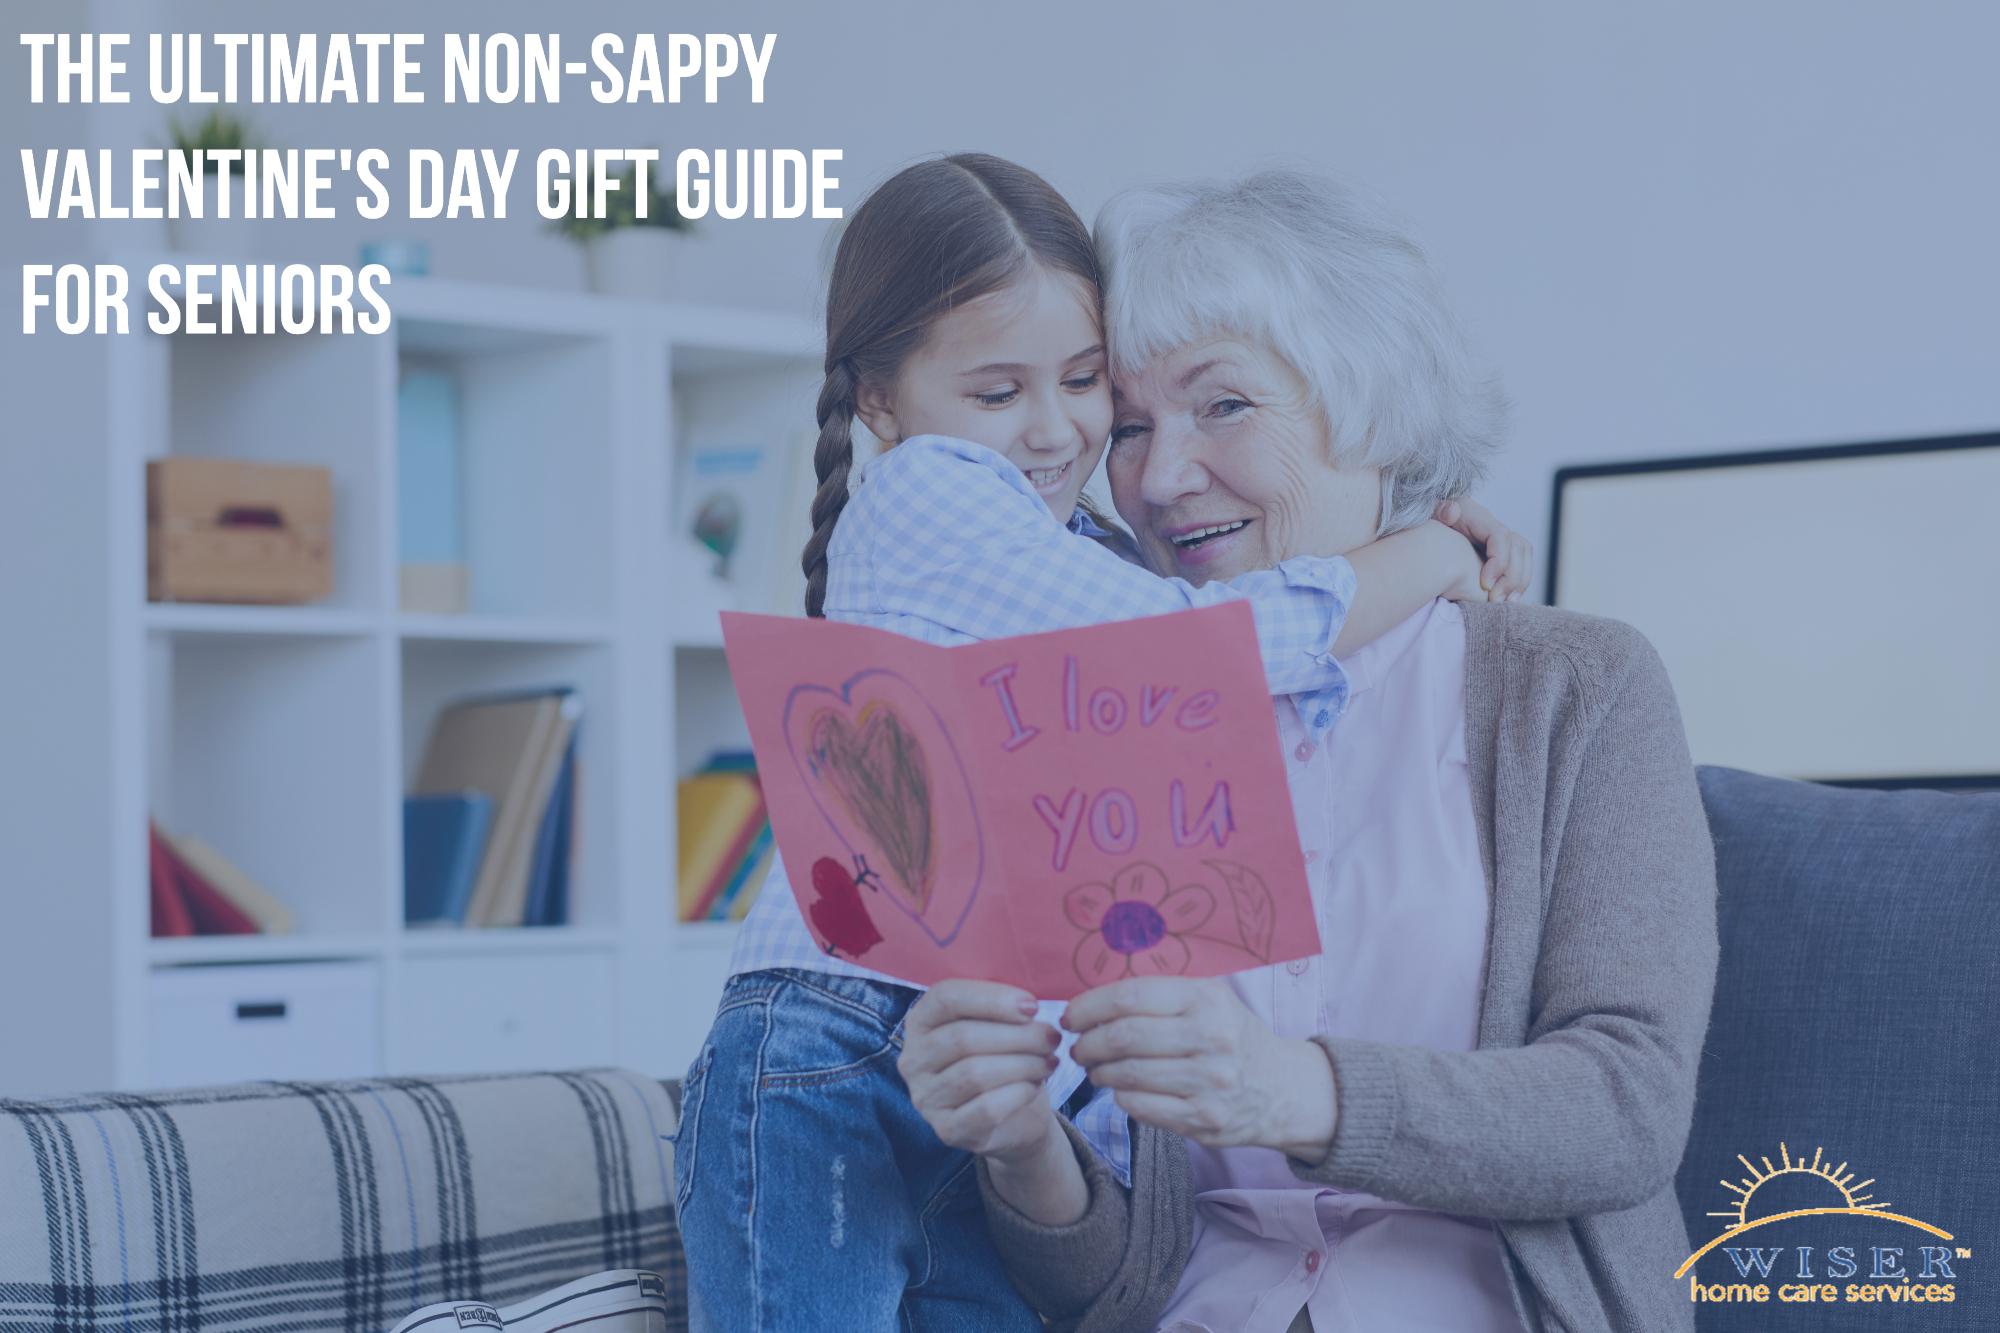 The Ultimate Non-Sappy Valentine's Day Gift Guide for Seniors